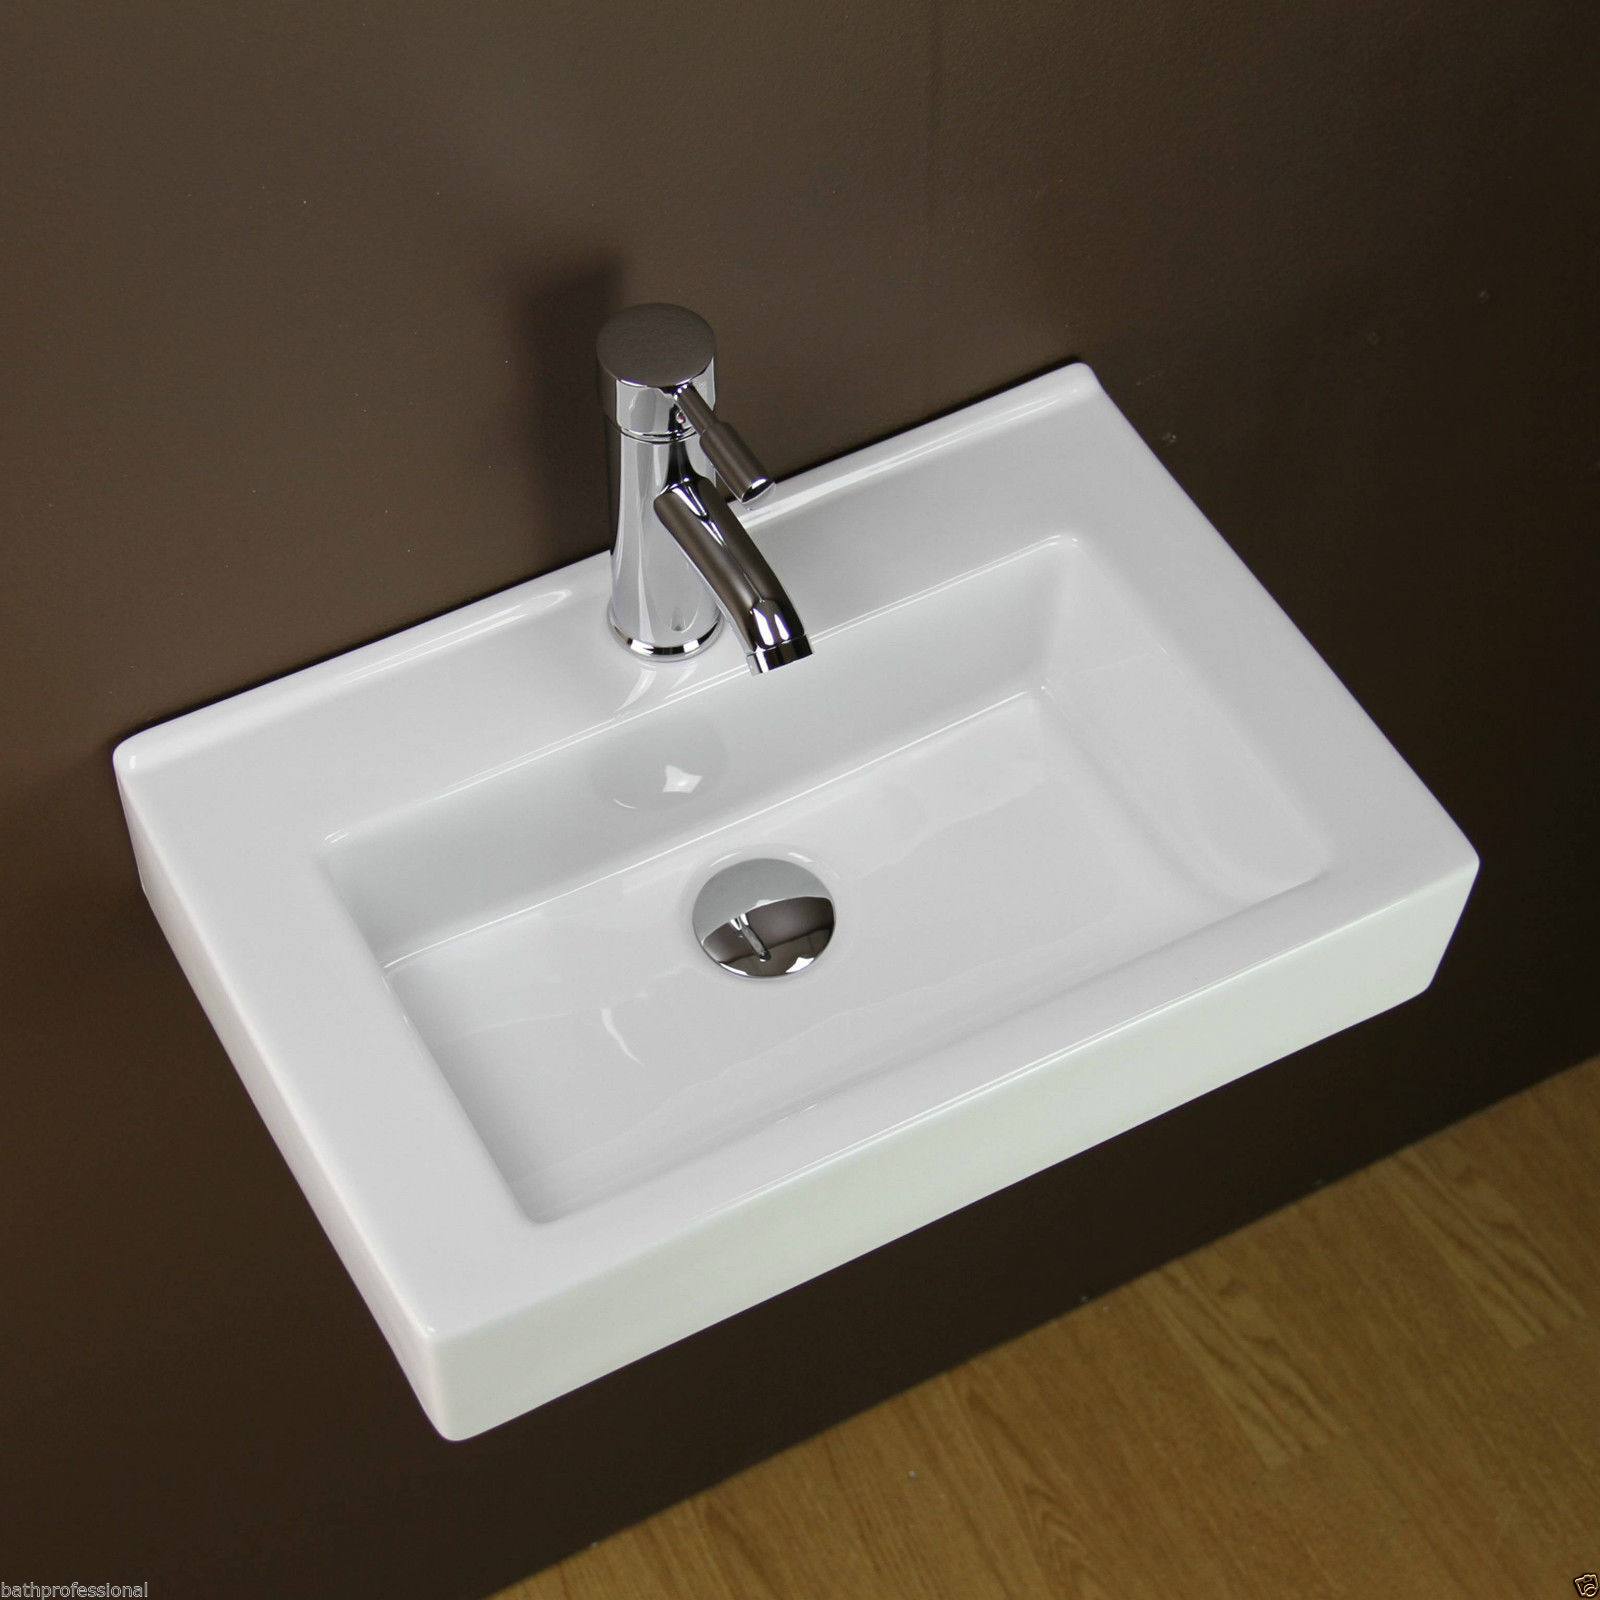 Basin Sink Bathroom Ceramic Wall Hung Mounted Countertop